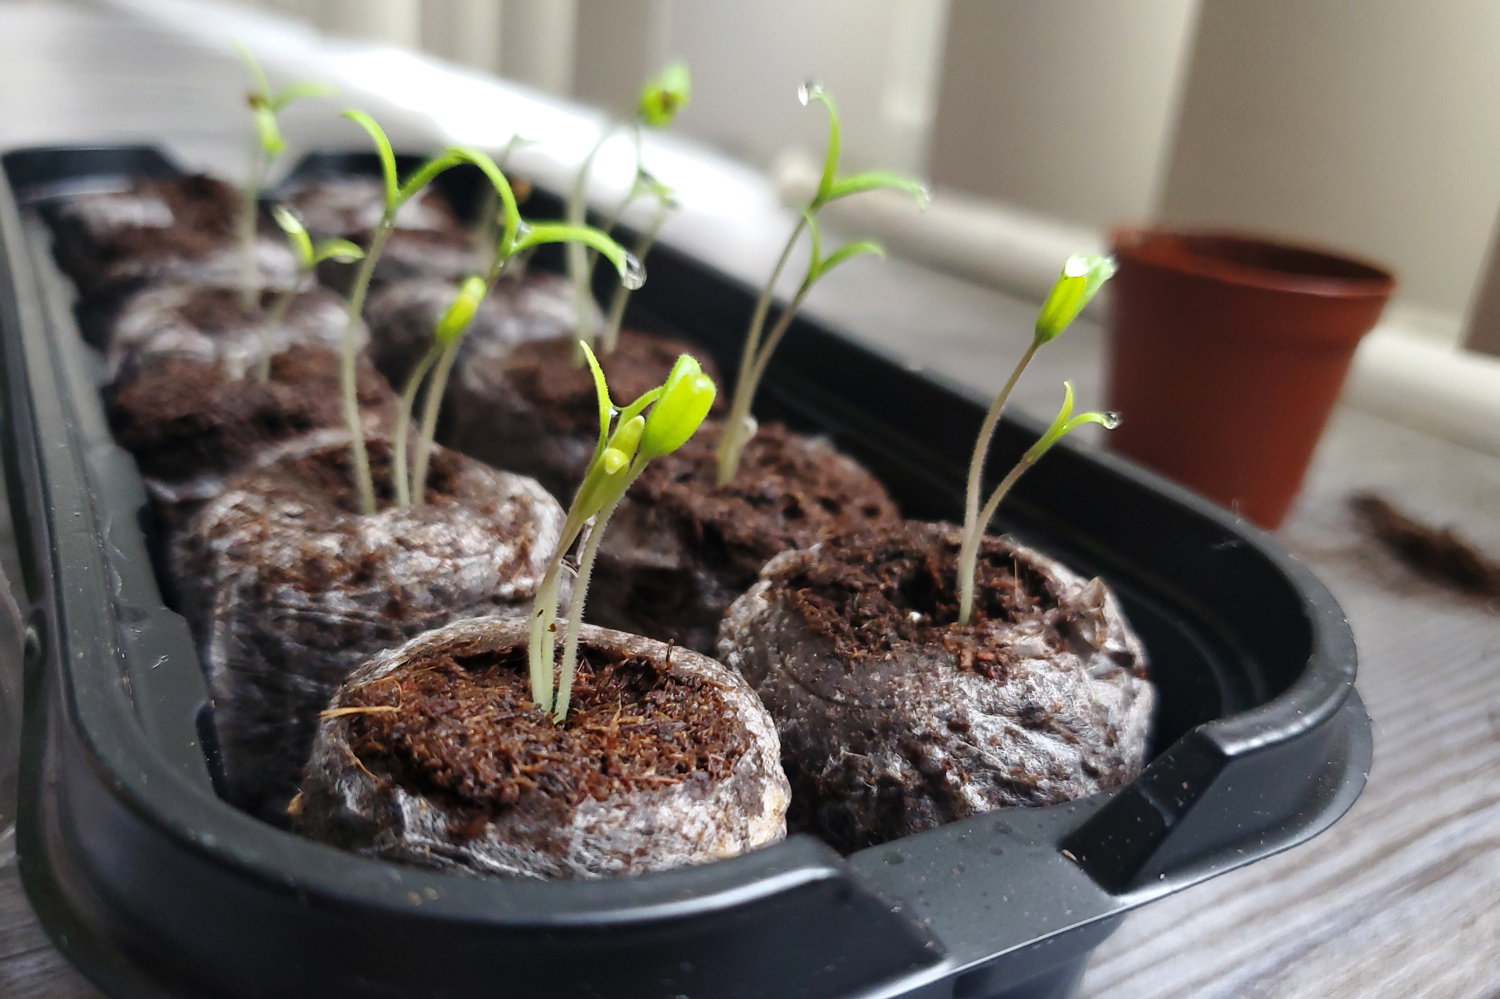 Tomato seedlings springing up in pairs or triples out of small peat moss disks